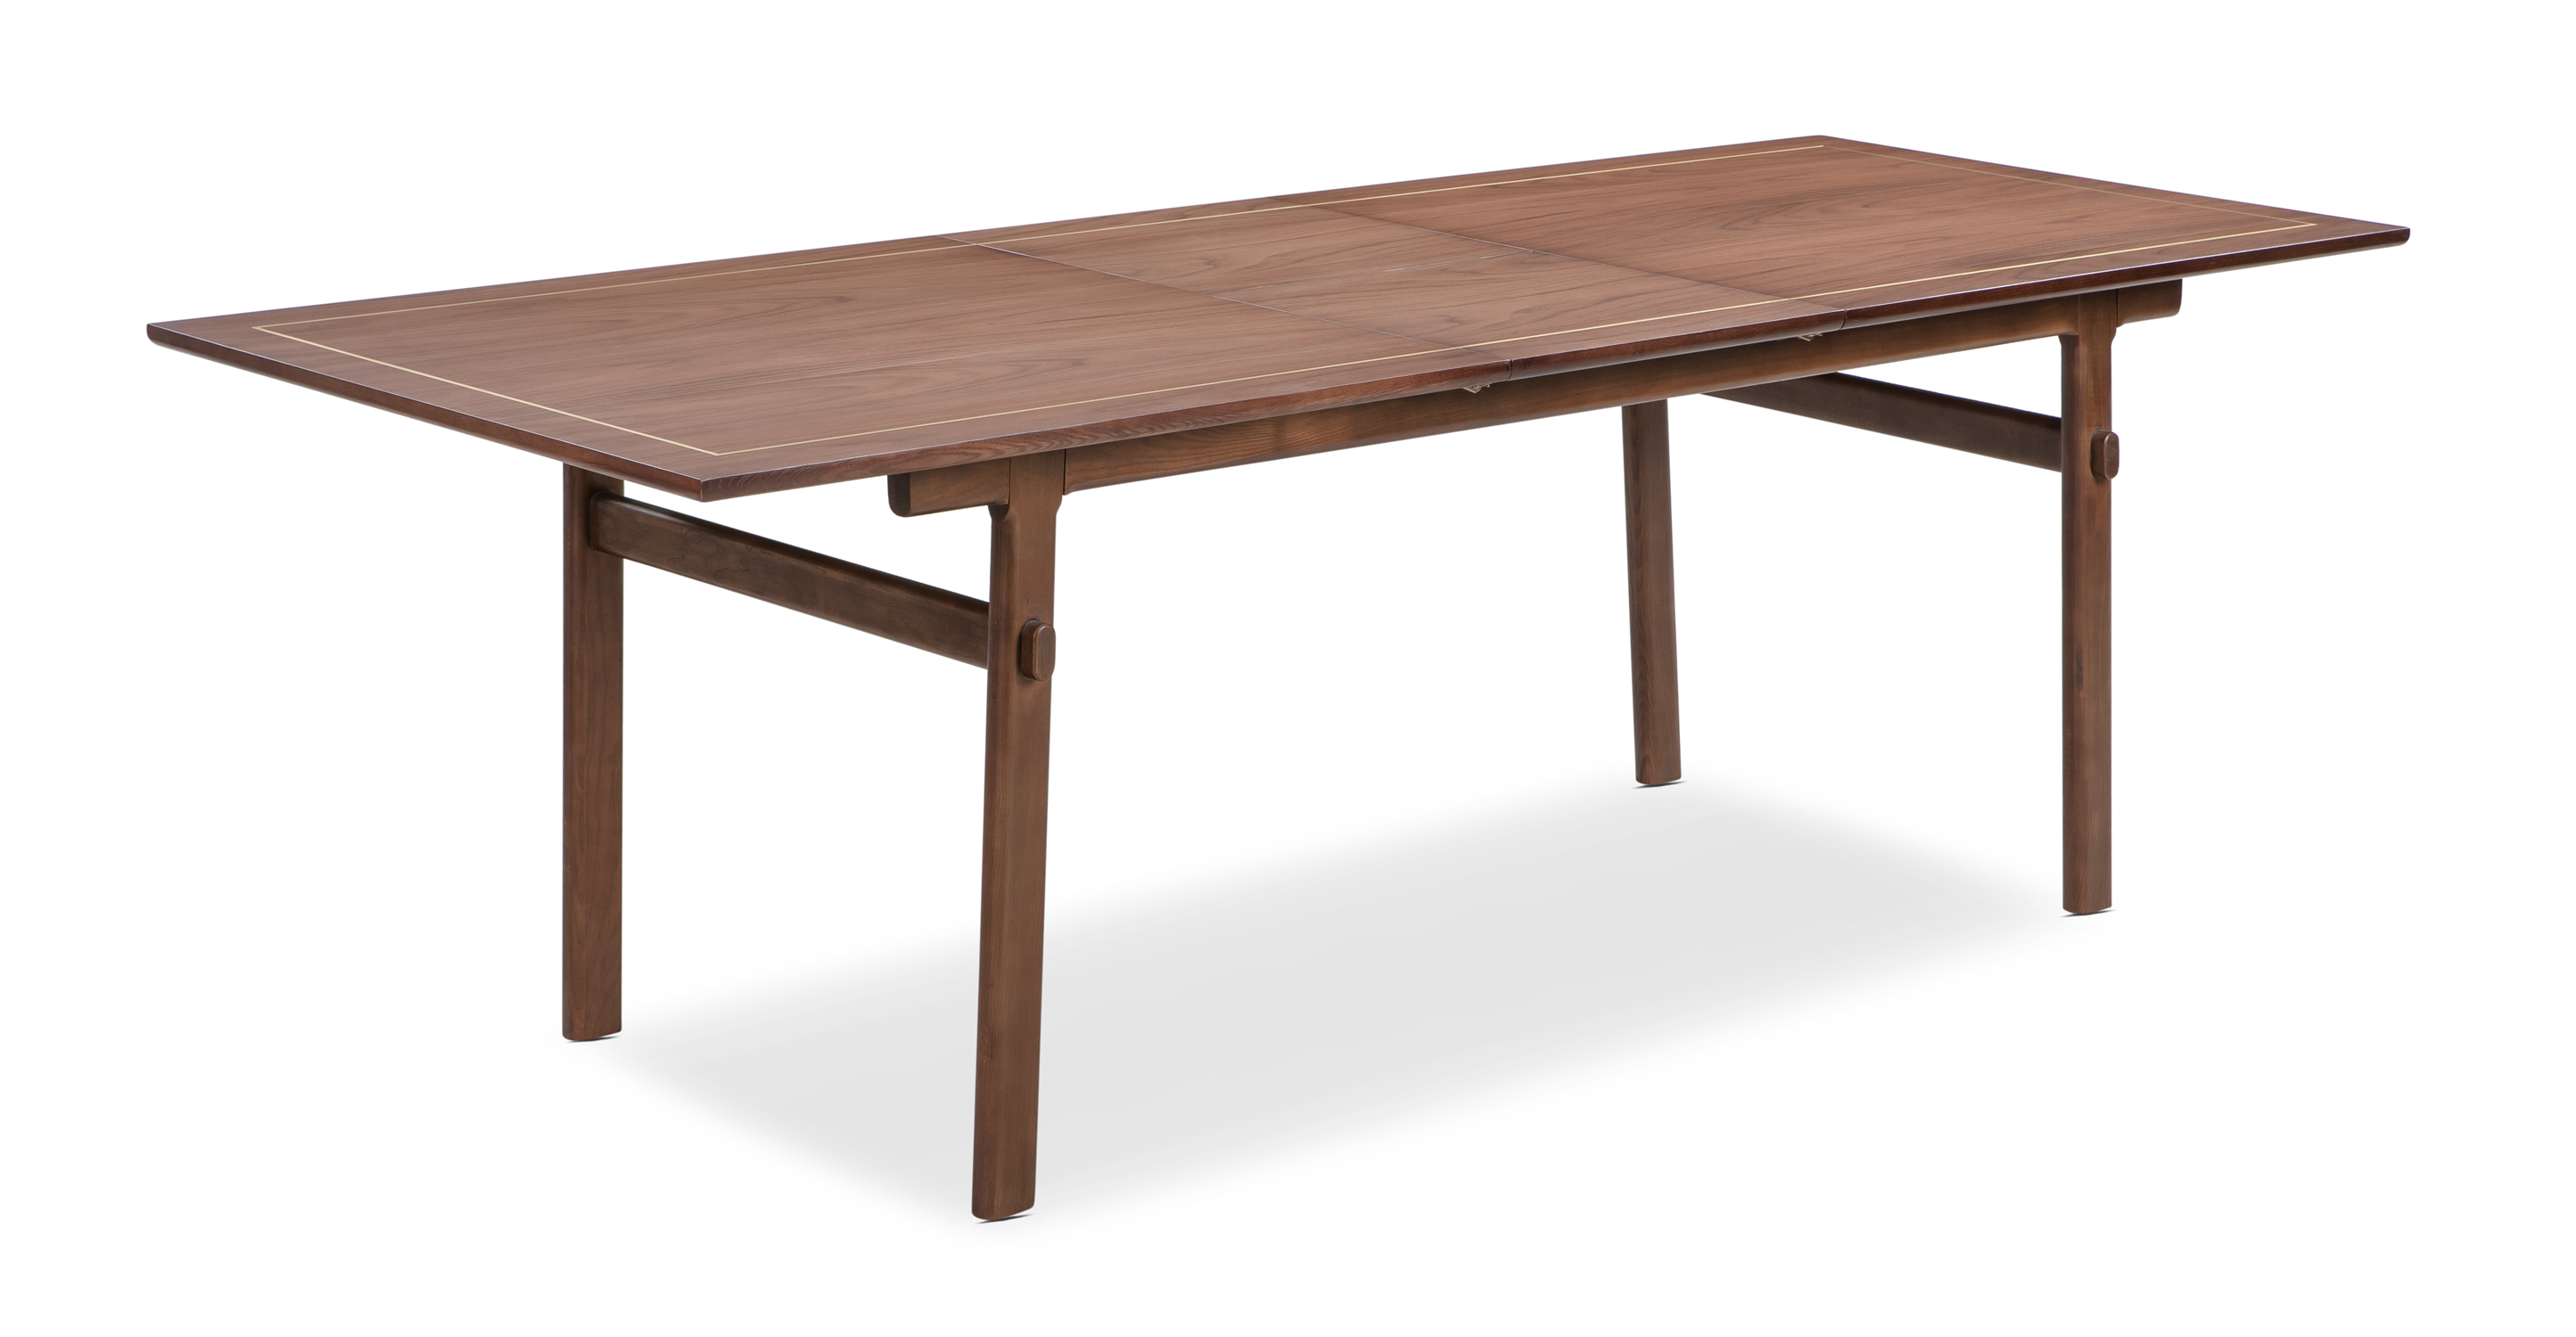 "Thrive 71-89"" Extendable Dining Table, Walnut"